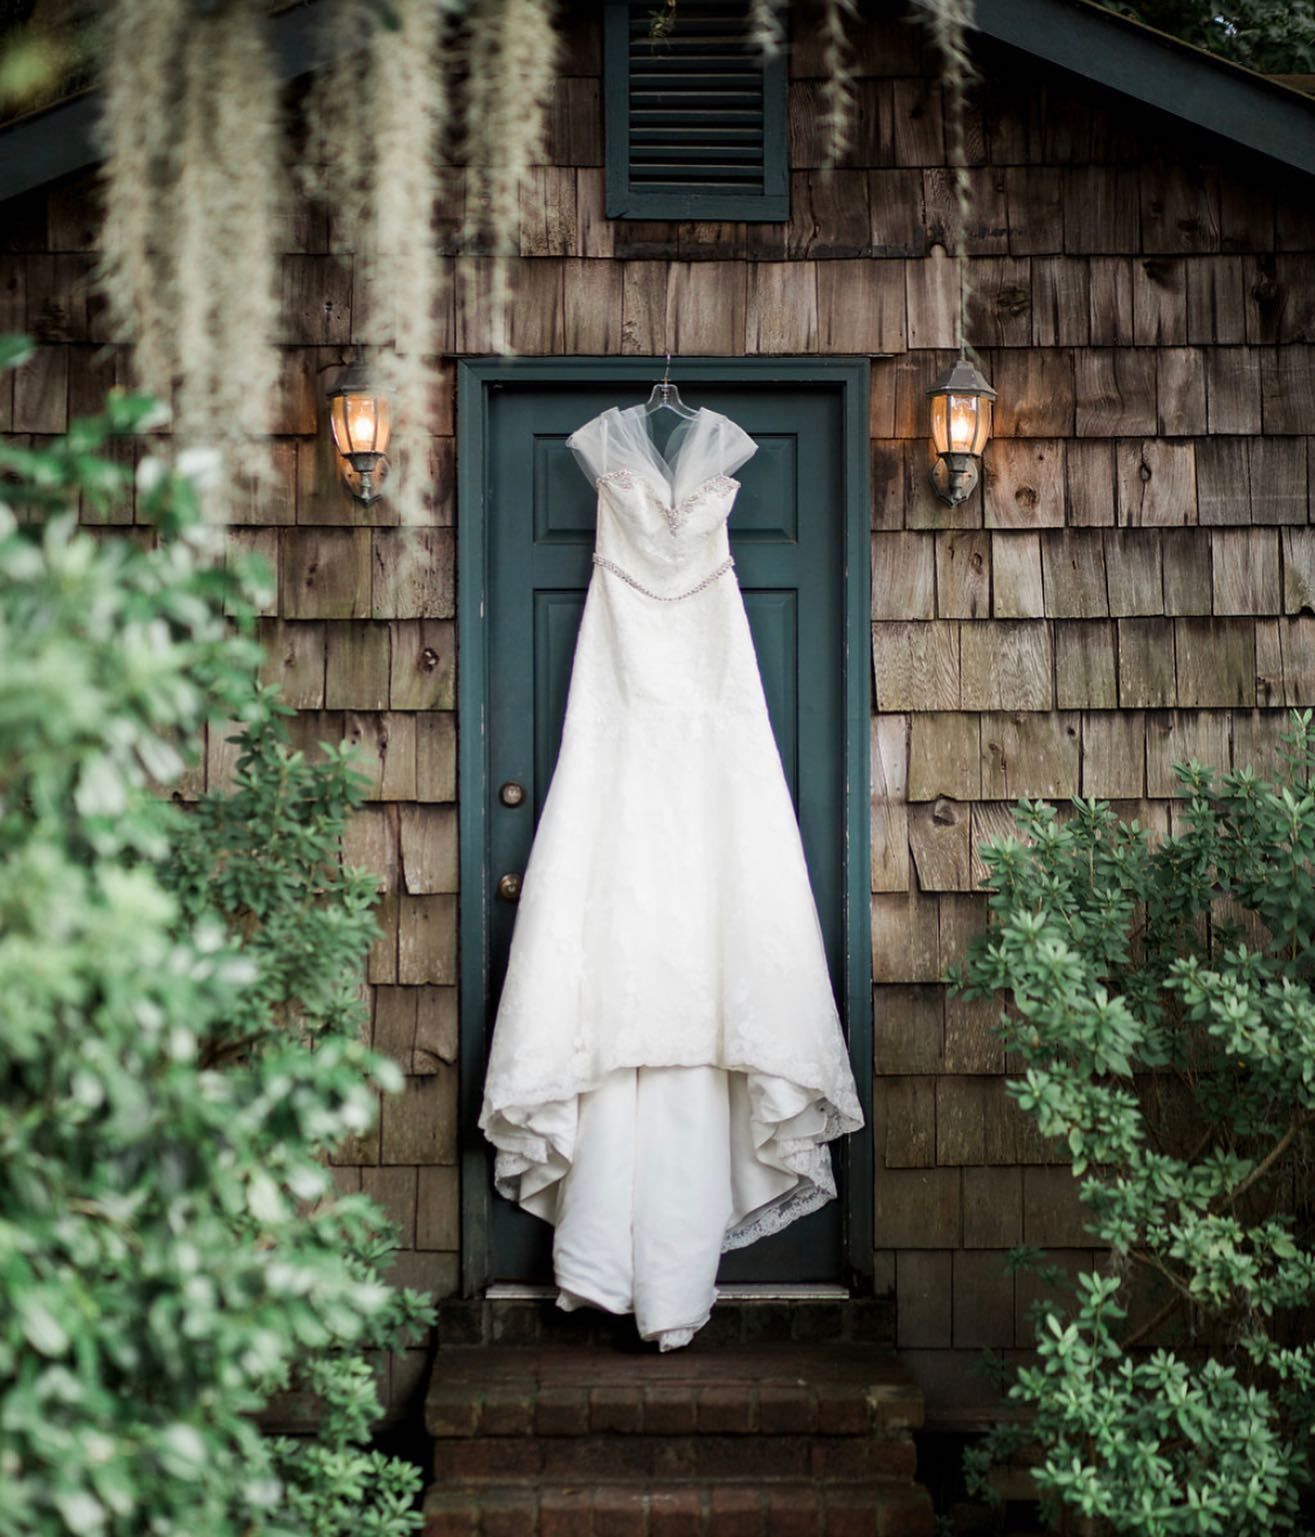 A bride's wedding dress placed on a hanger in front of a blue colored door